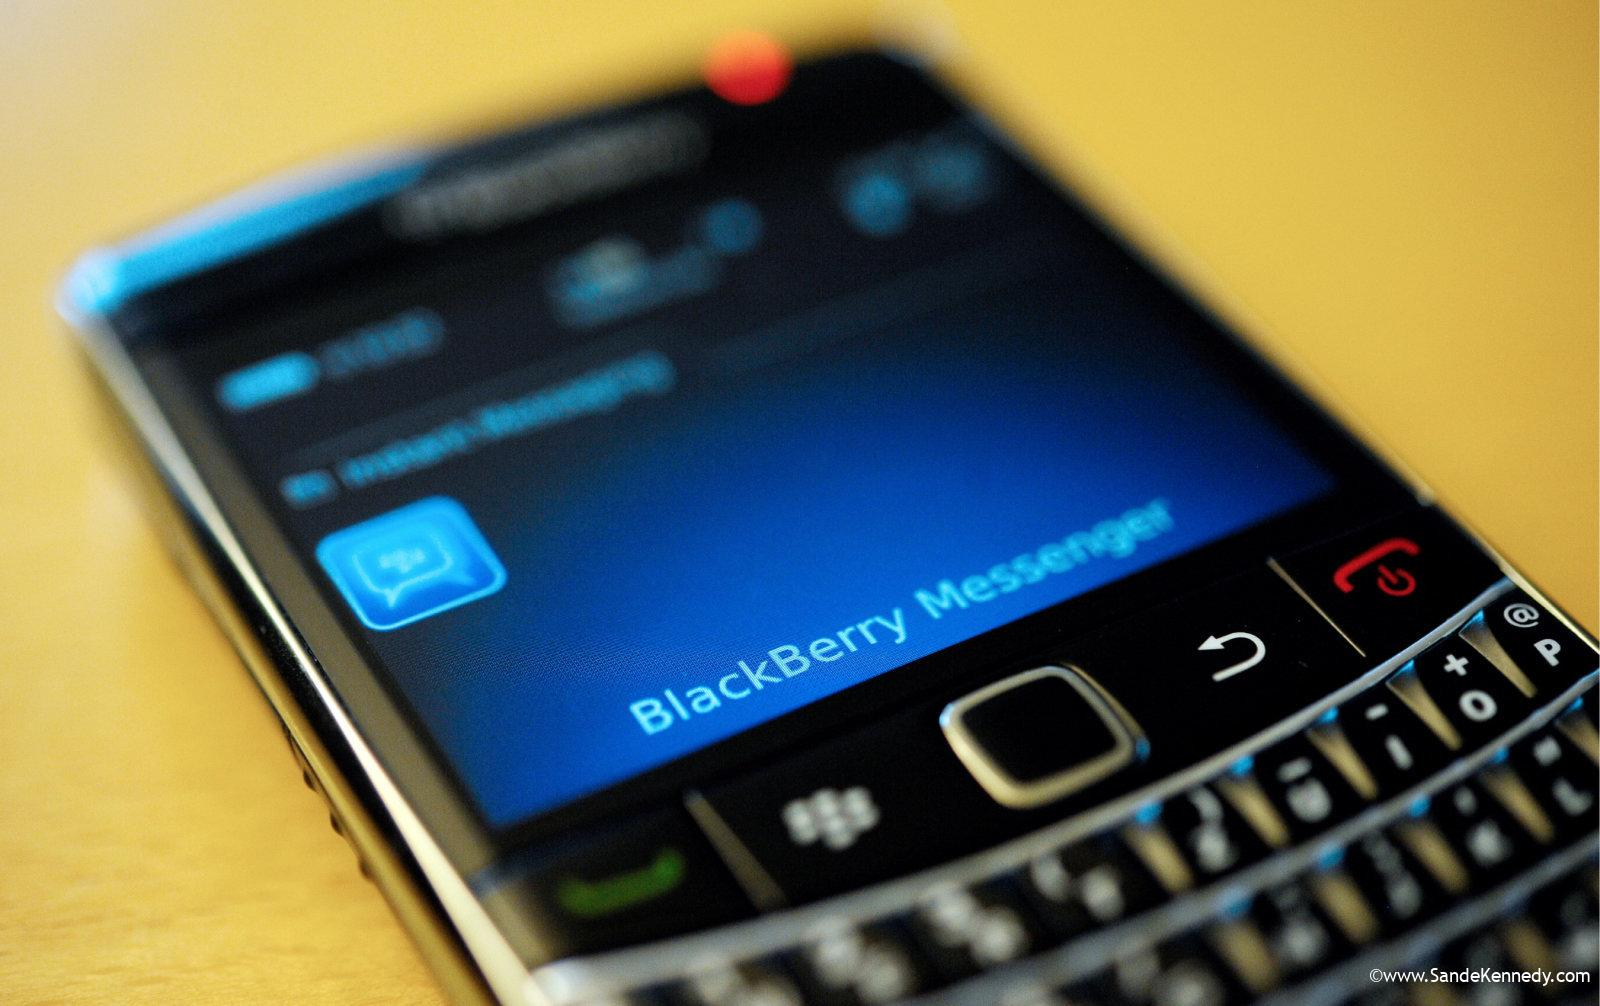 """FILE - This file photo taken Sept. 8, 2011, shows a BlackBerry smartphone using the """"Messenger"""" service, in Berlin. Research In Motion releases quarterly financial results Friday, Sept. 15, 2011, after the market close. (AP Photo/dapd, Oliver Lang, File)"""